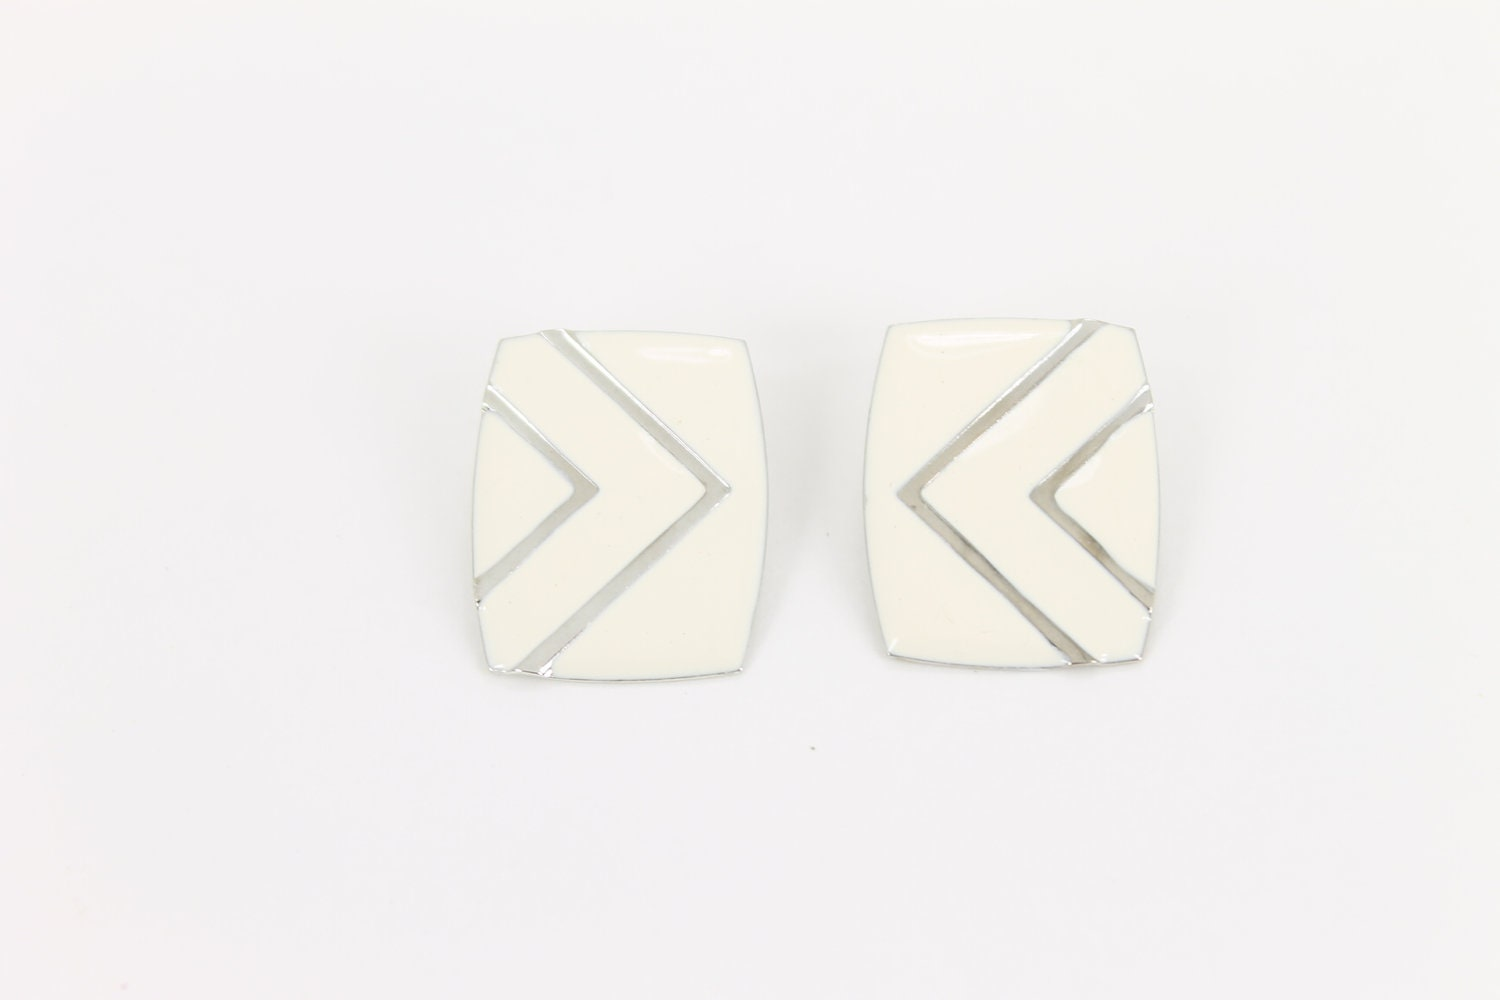 ivory earrings chevron rectangle square silver 1980s retro - gingerandjudy